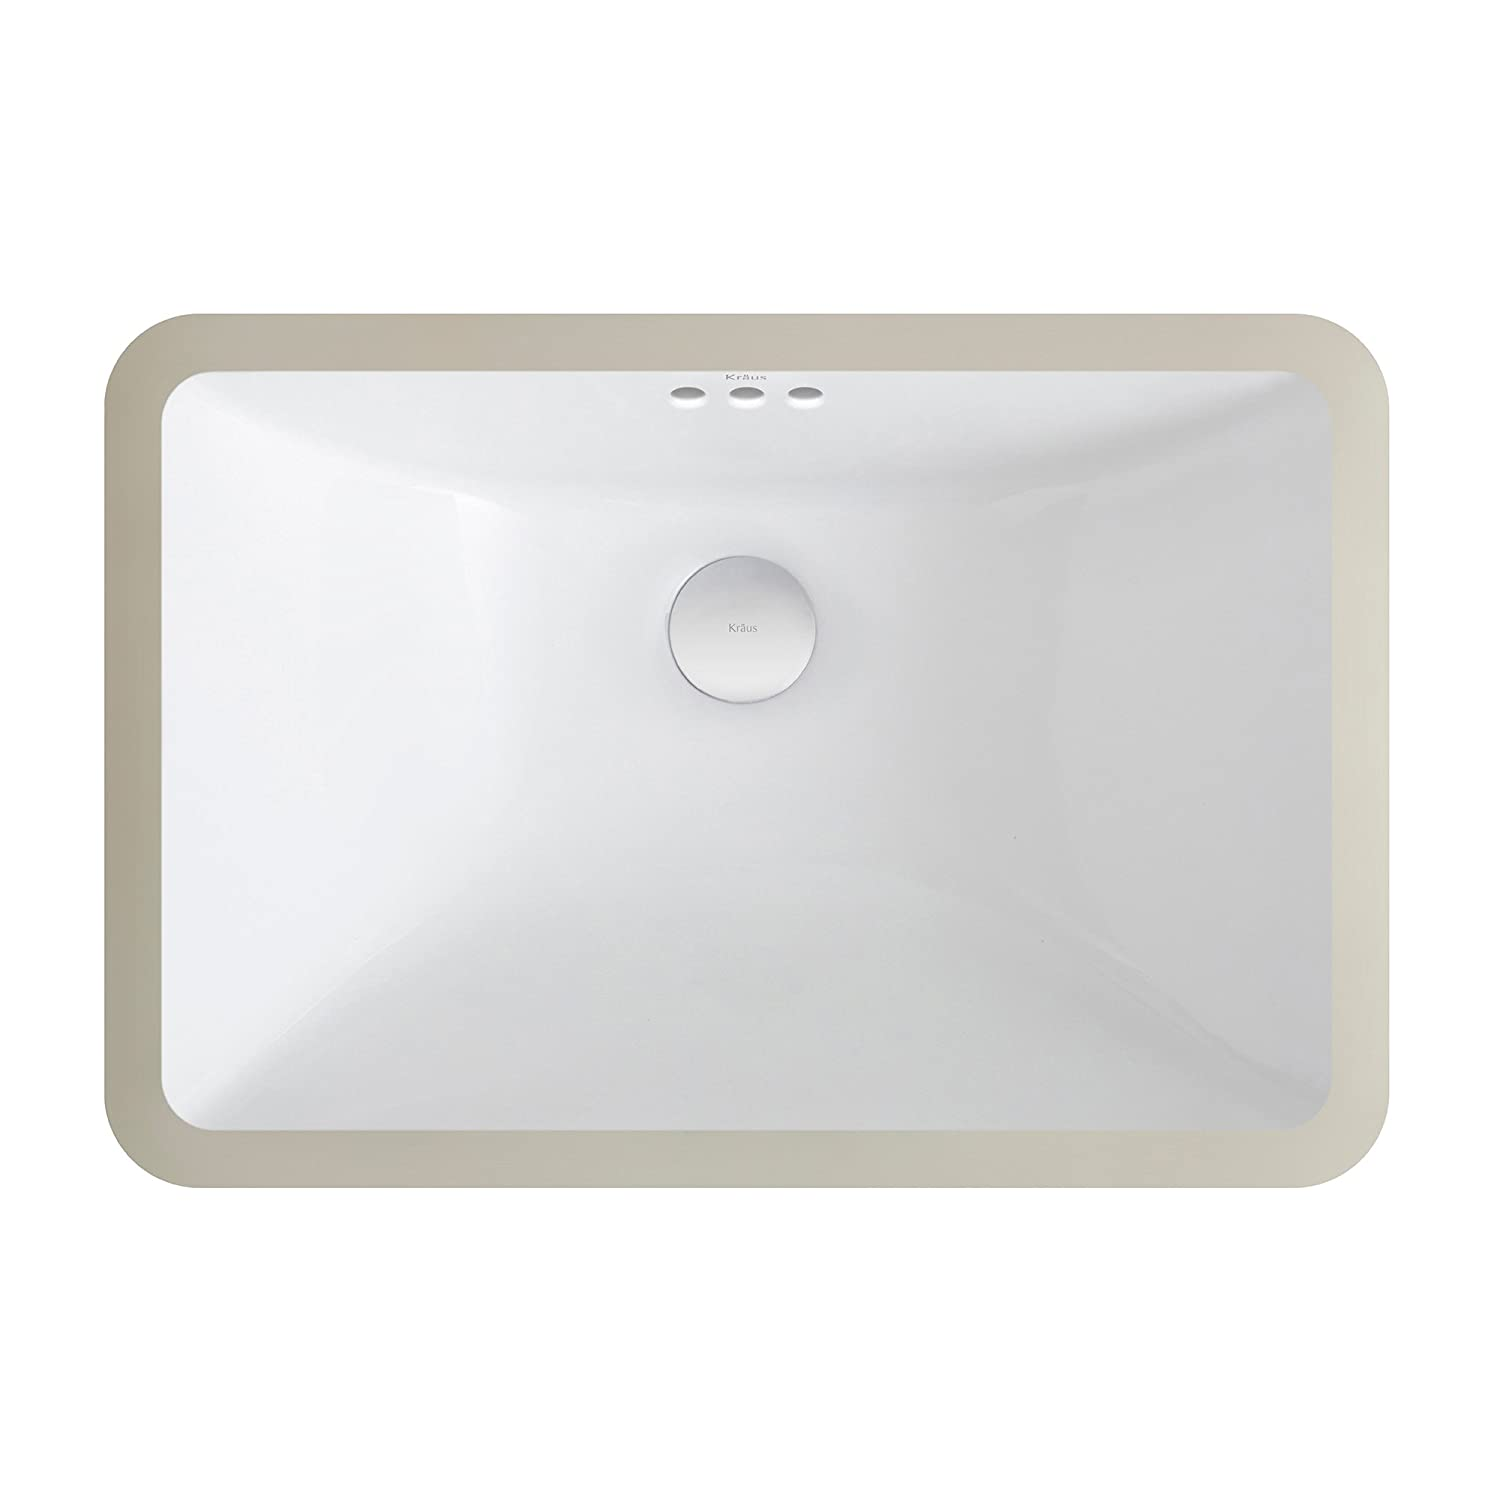 Kraus KCU 241 Elavo Ceramic Small Rectangular Undermount Bathroom